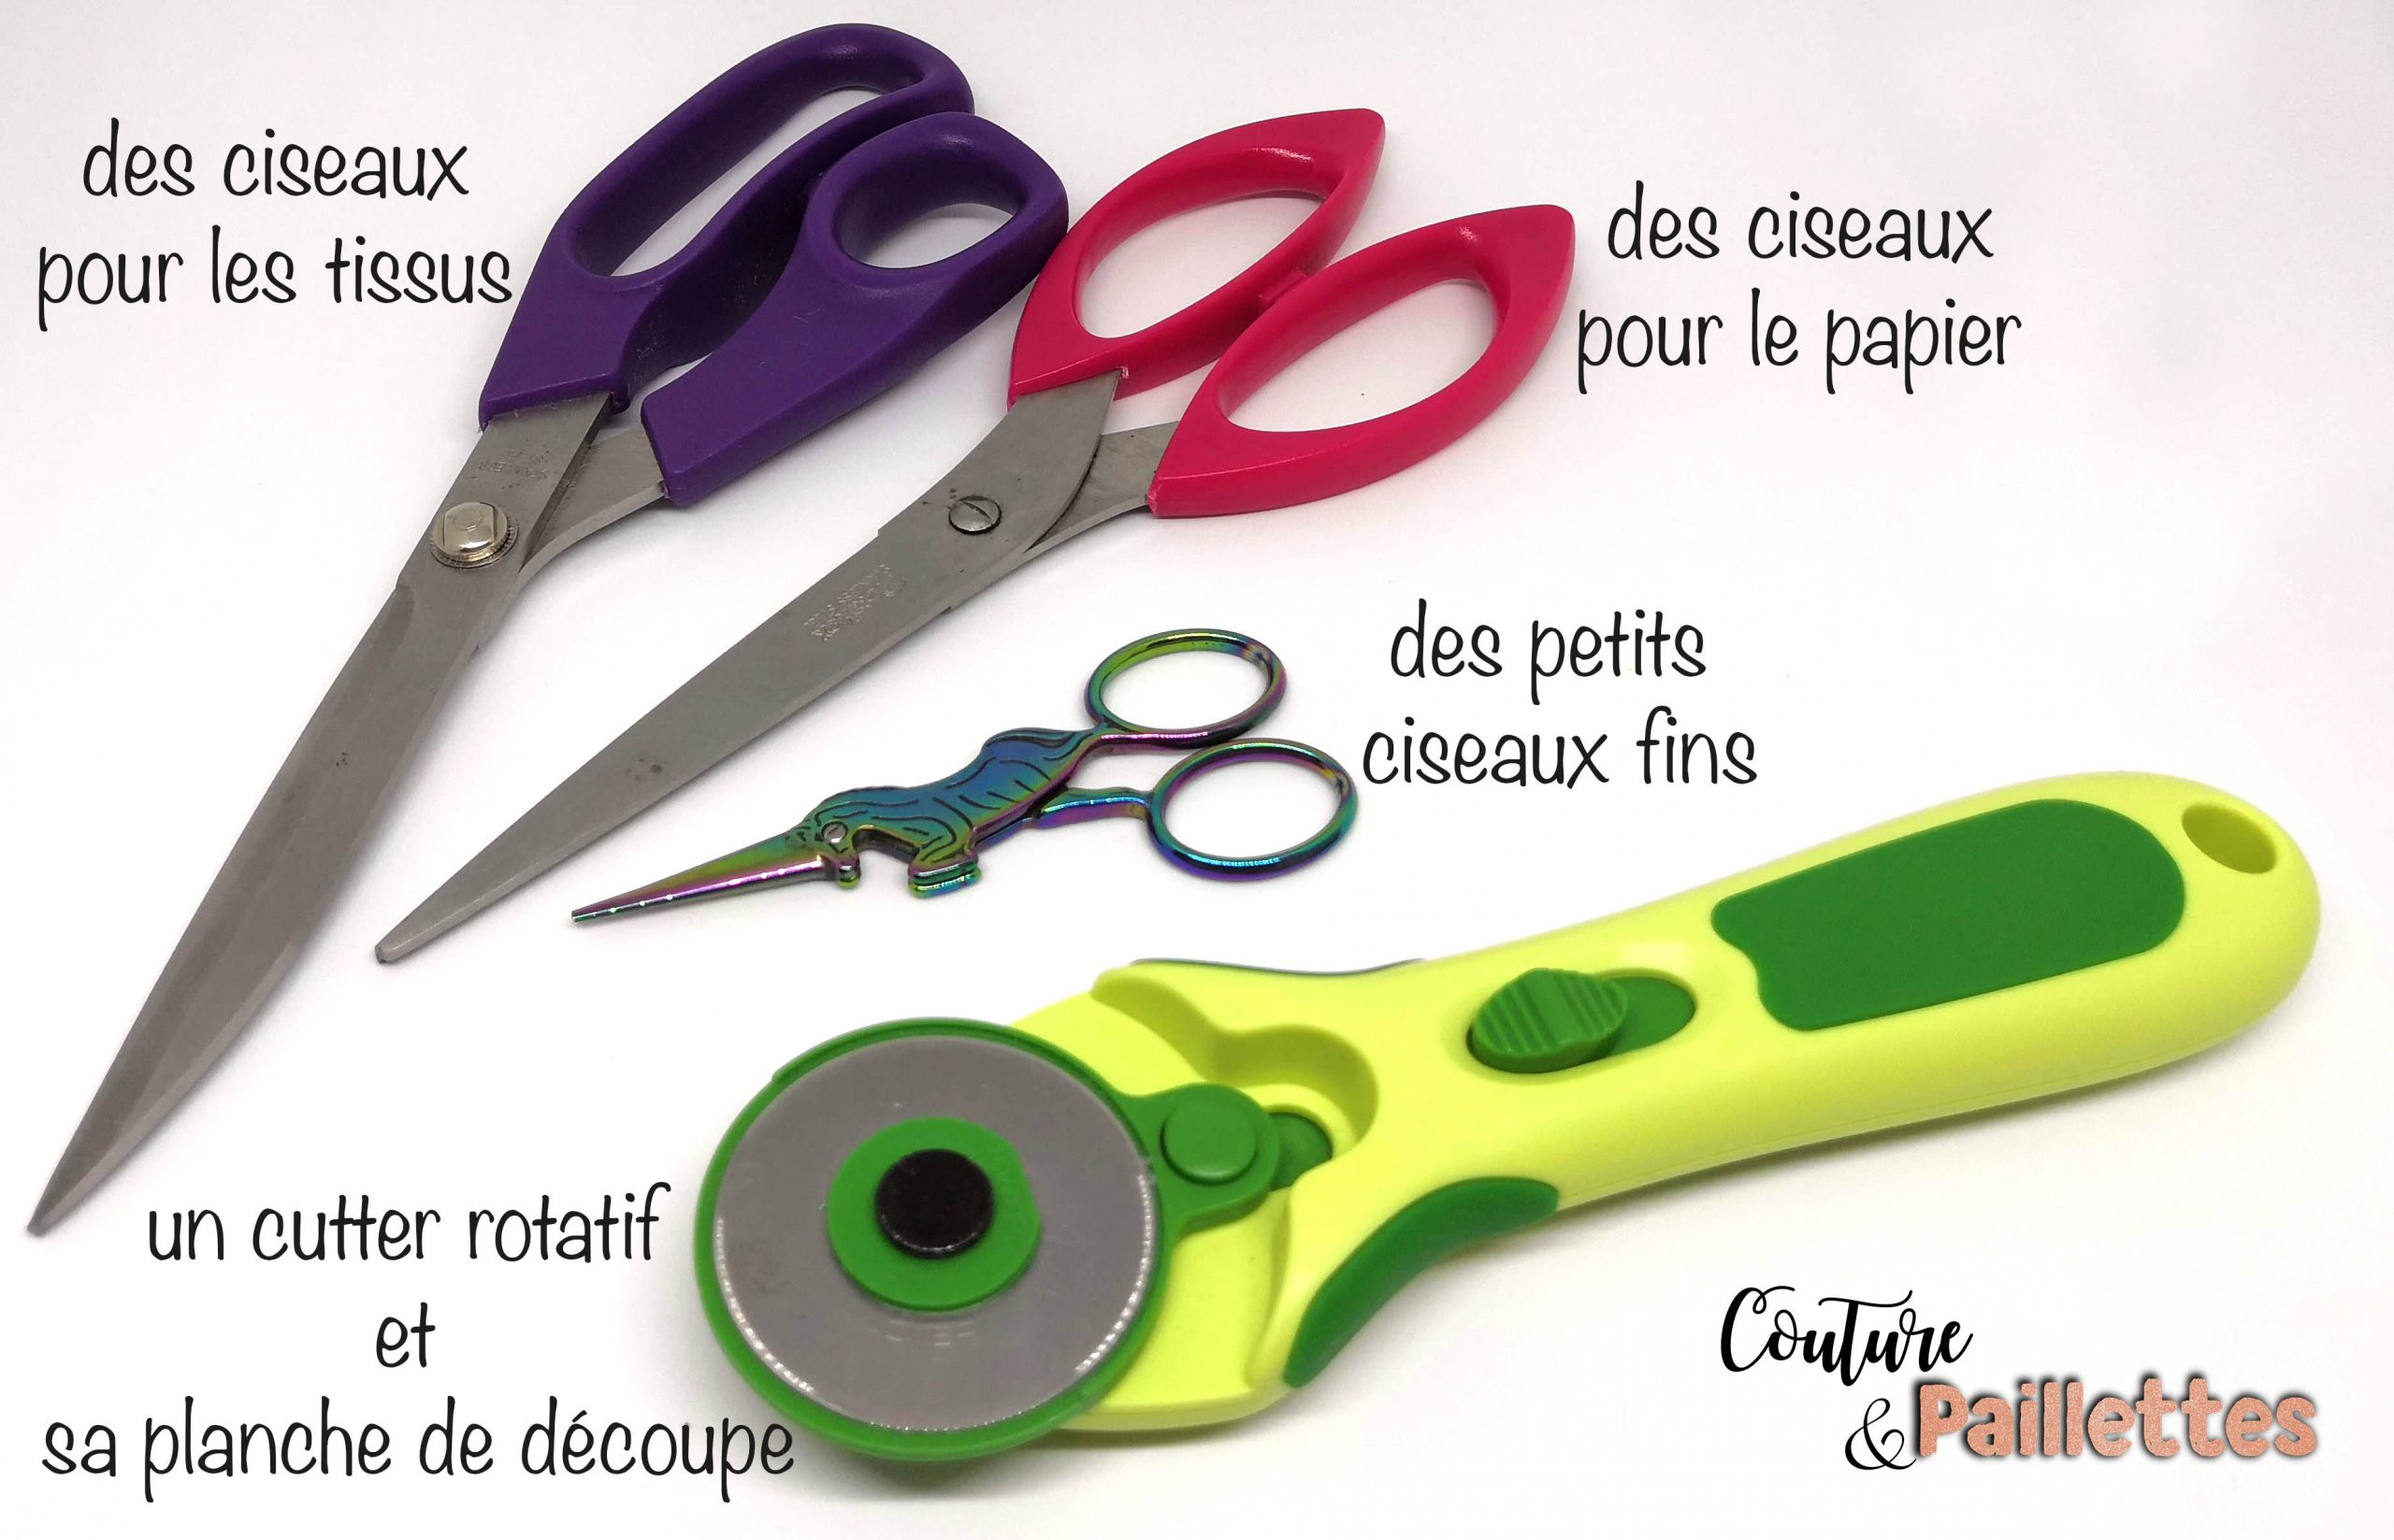 outils-coupe-couture